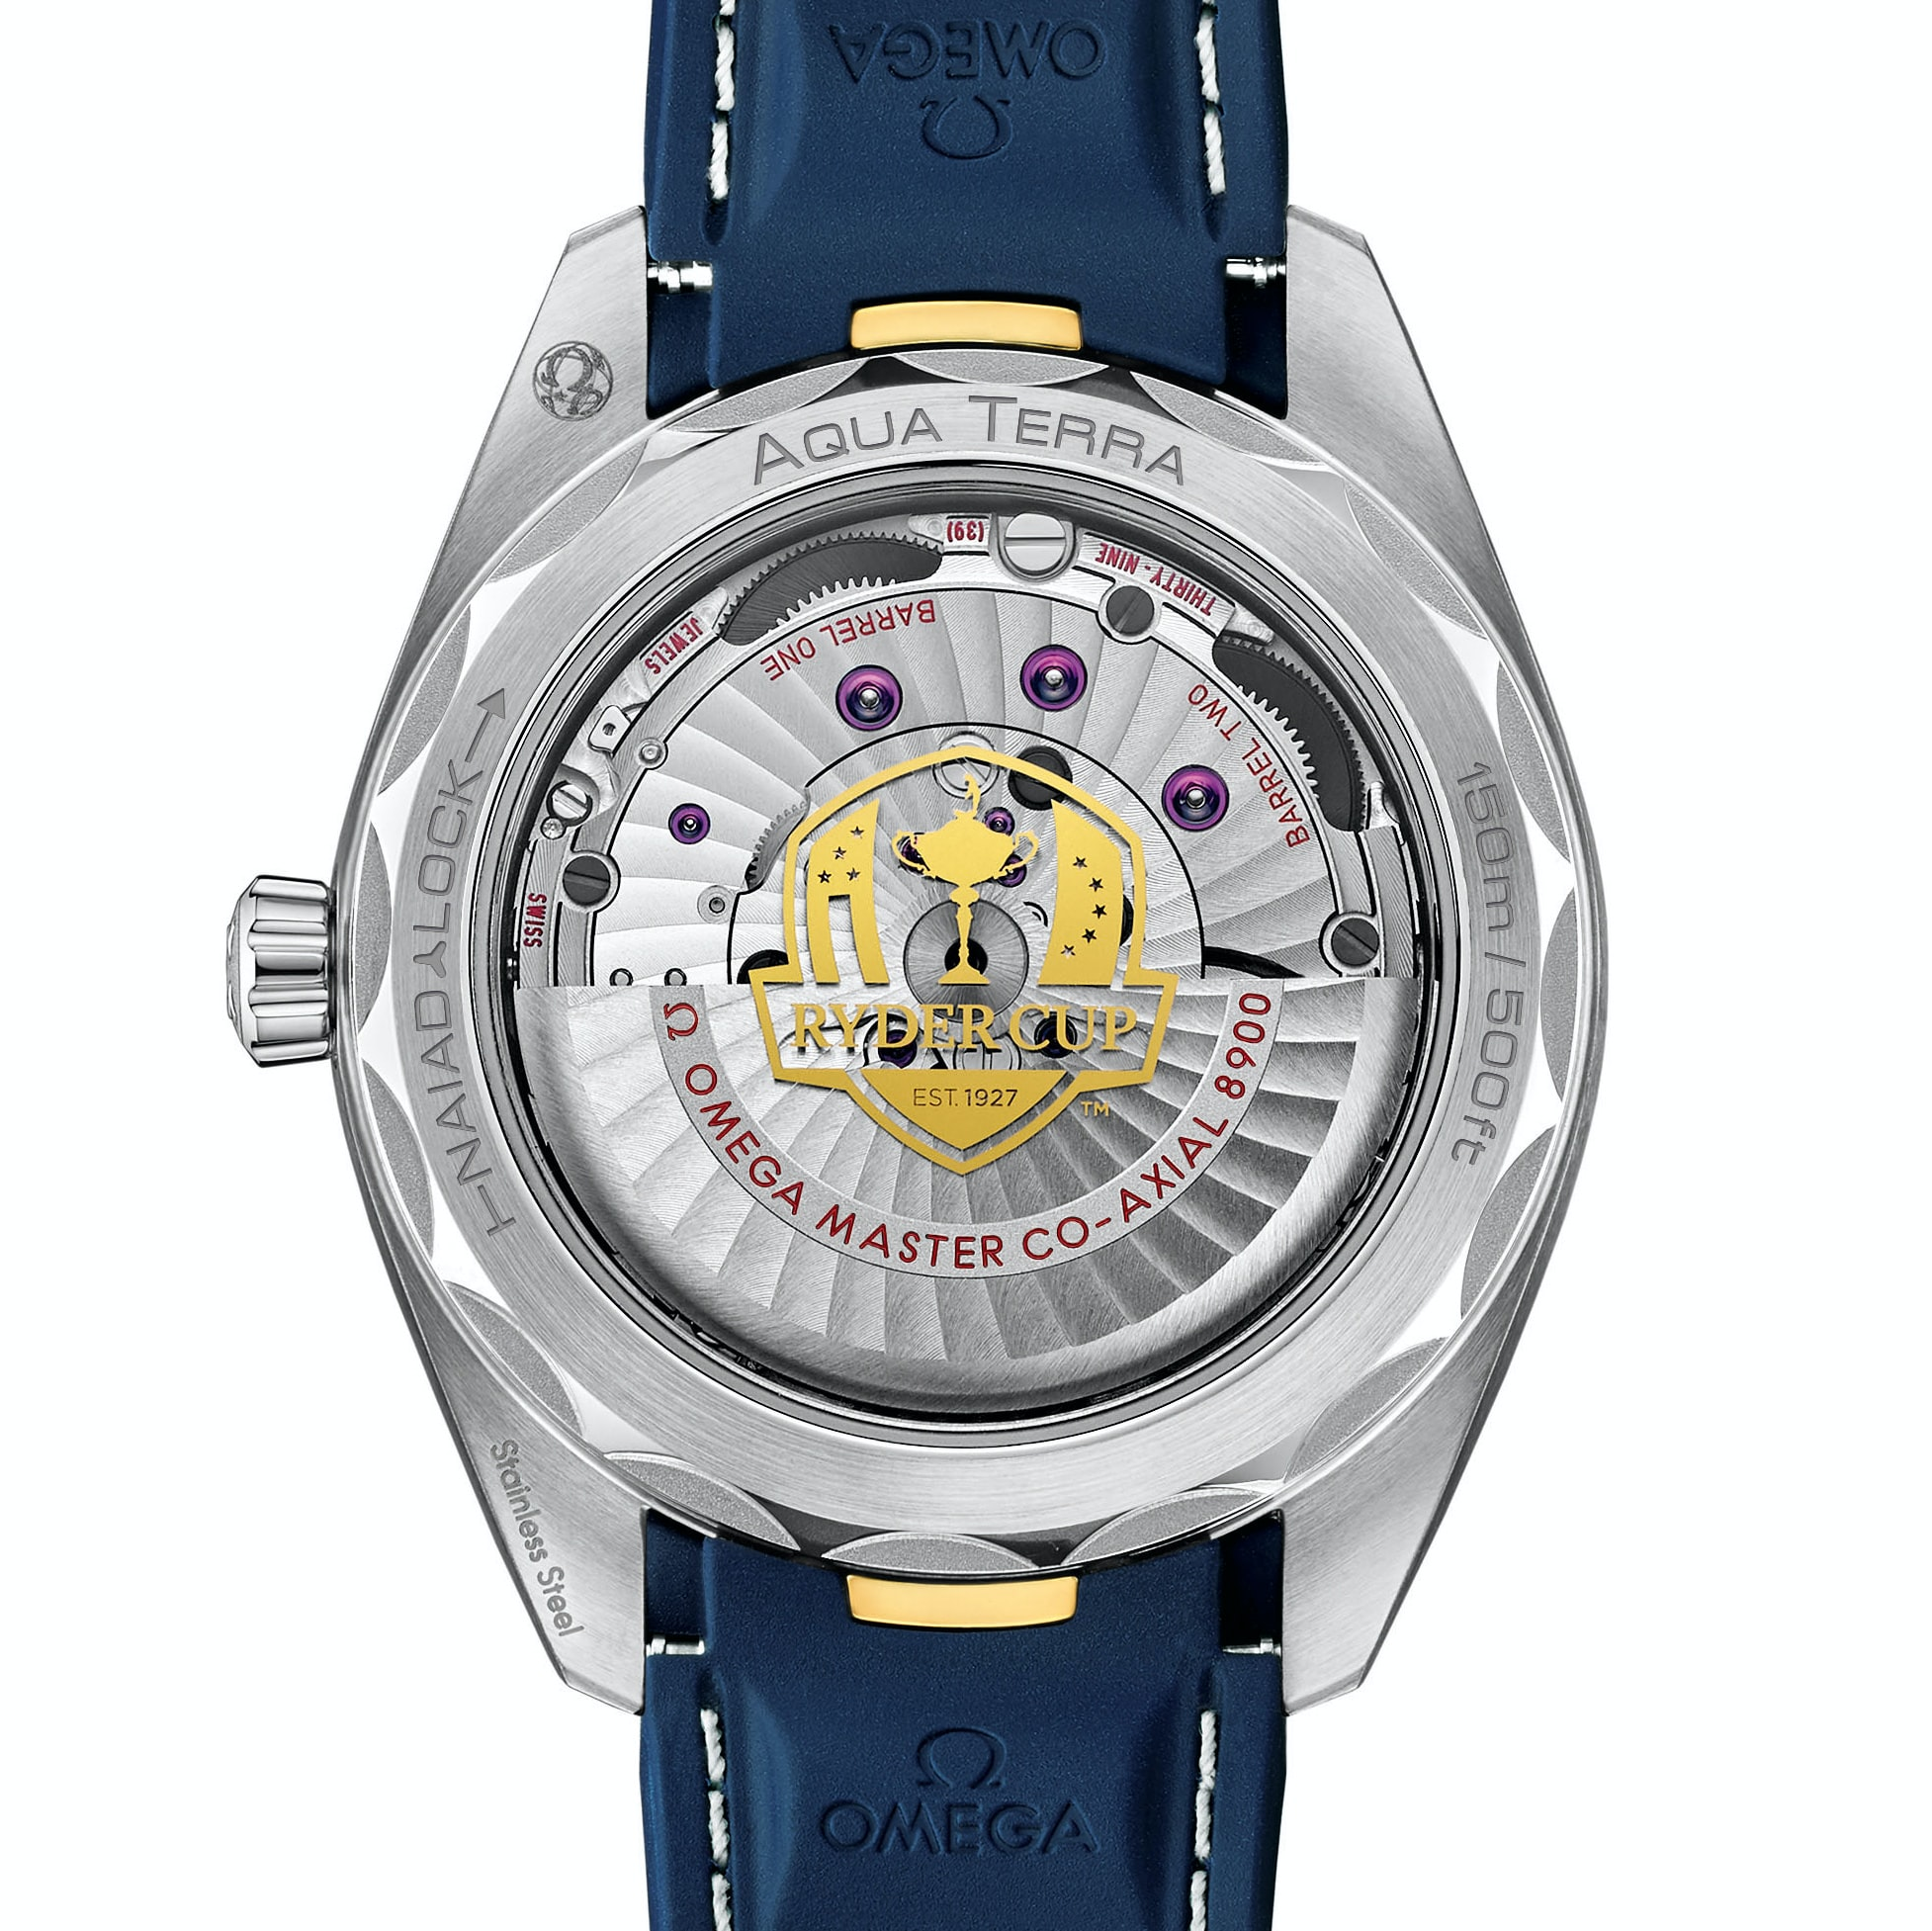 Introducing: The Omega Seamaster Aqua Terra 150M 'Ryder Cup' aqua back